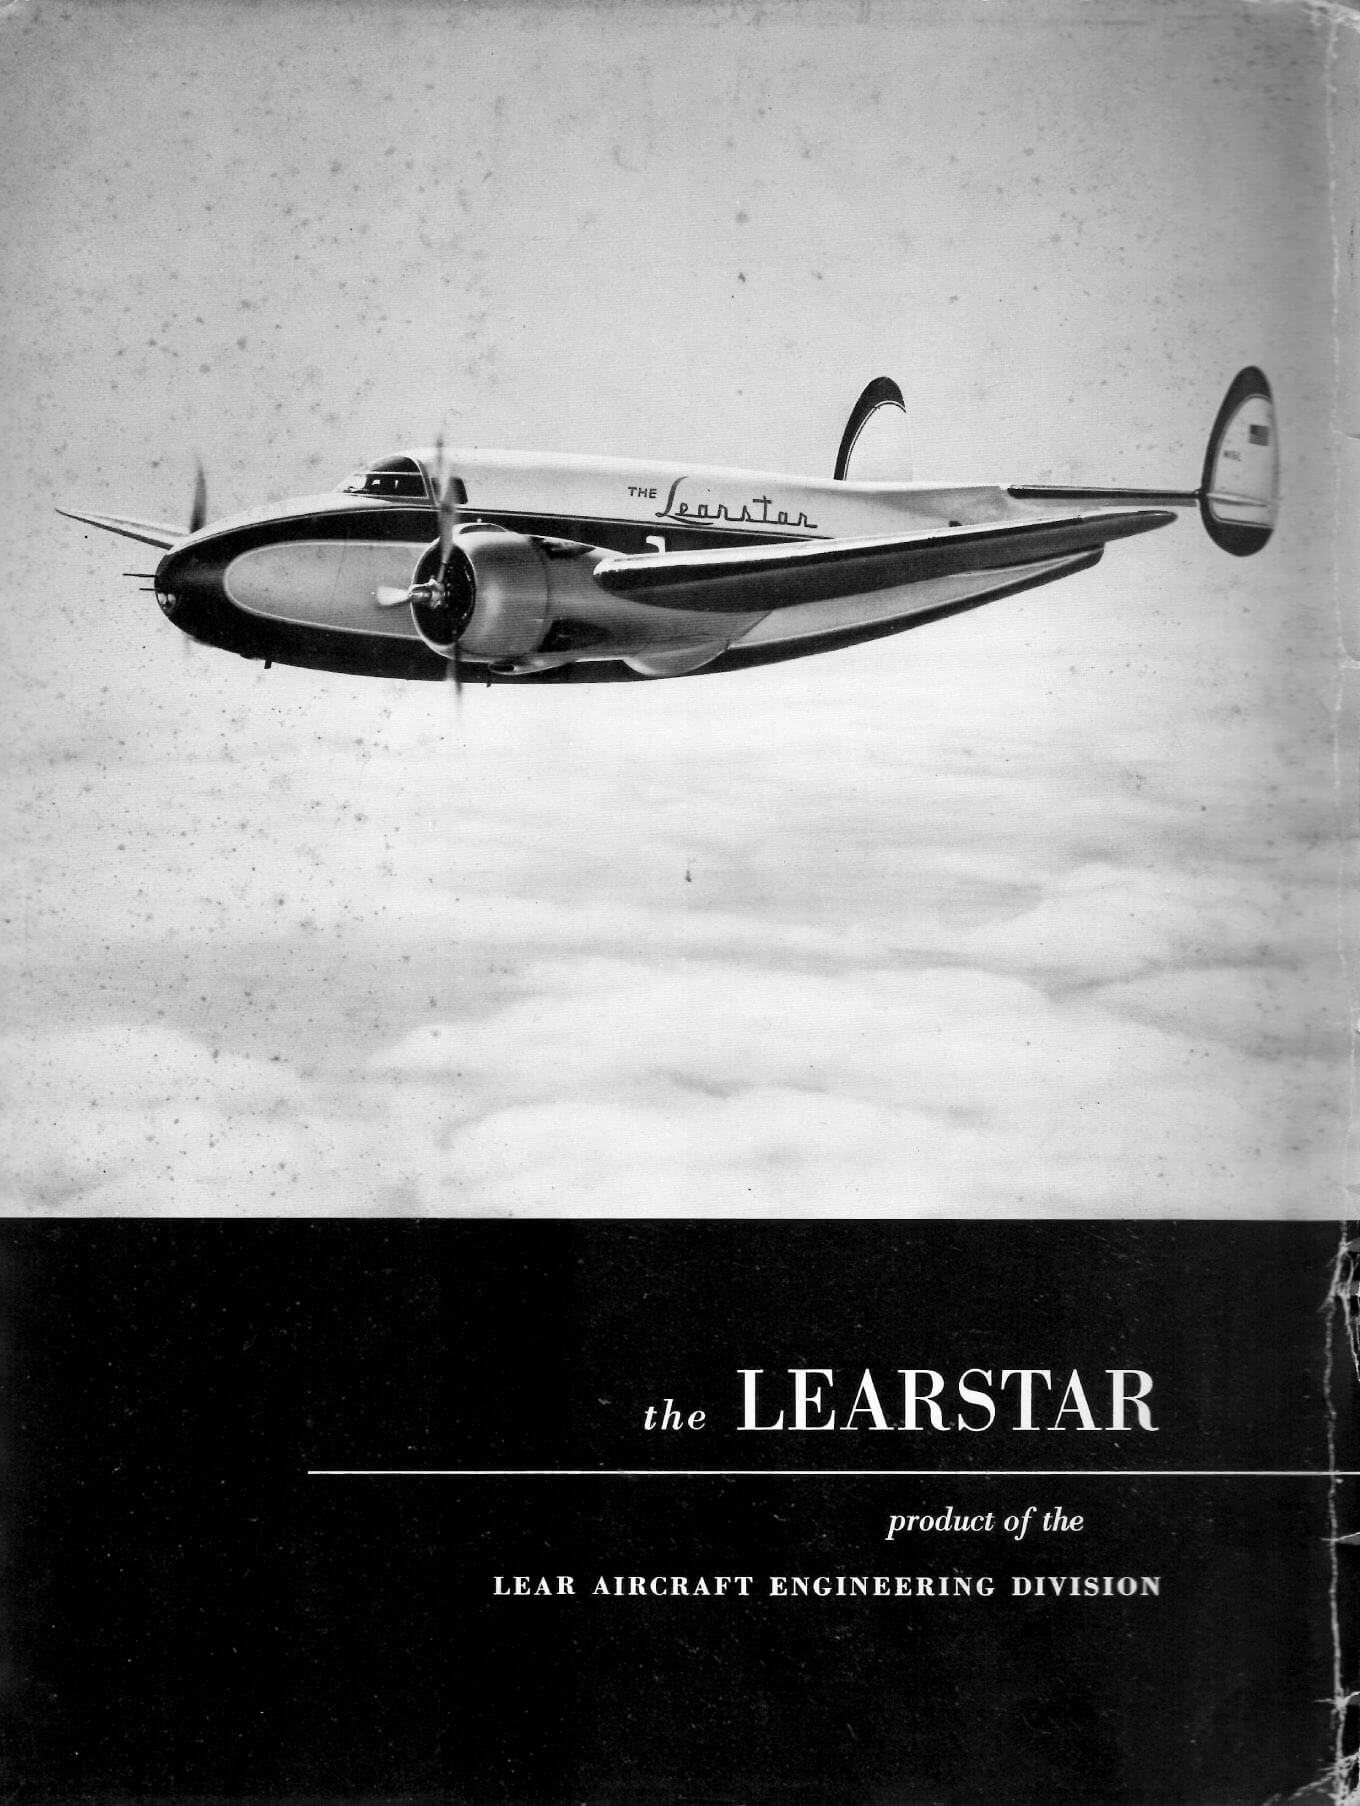 Flight Manual for the Learstar